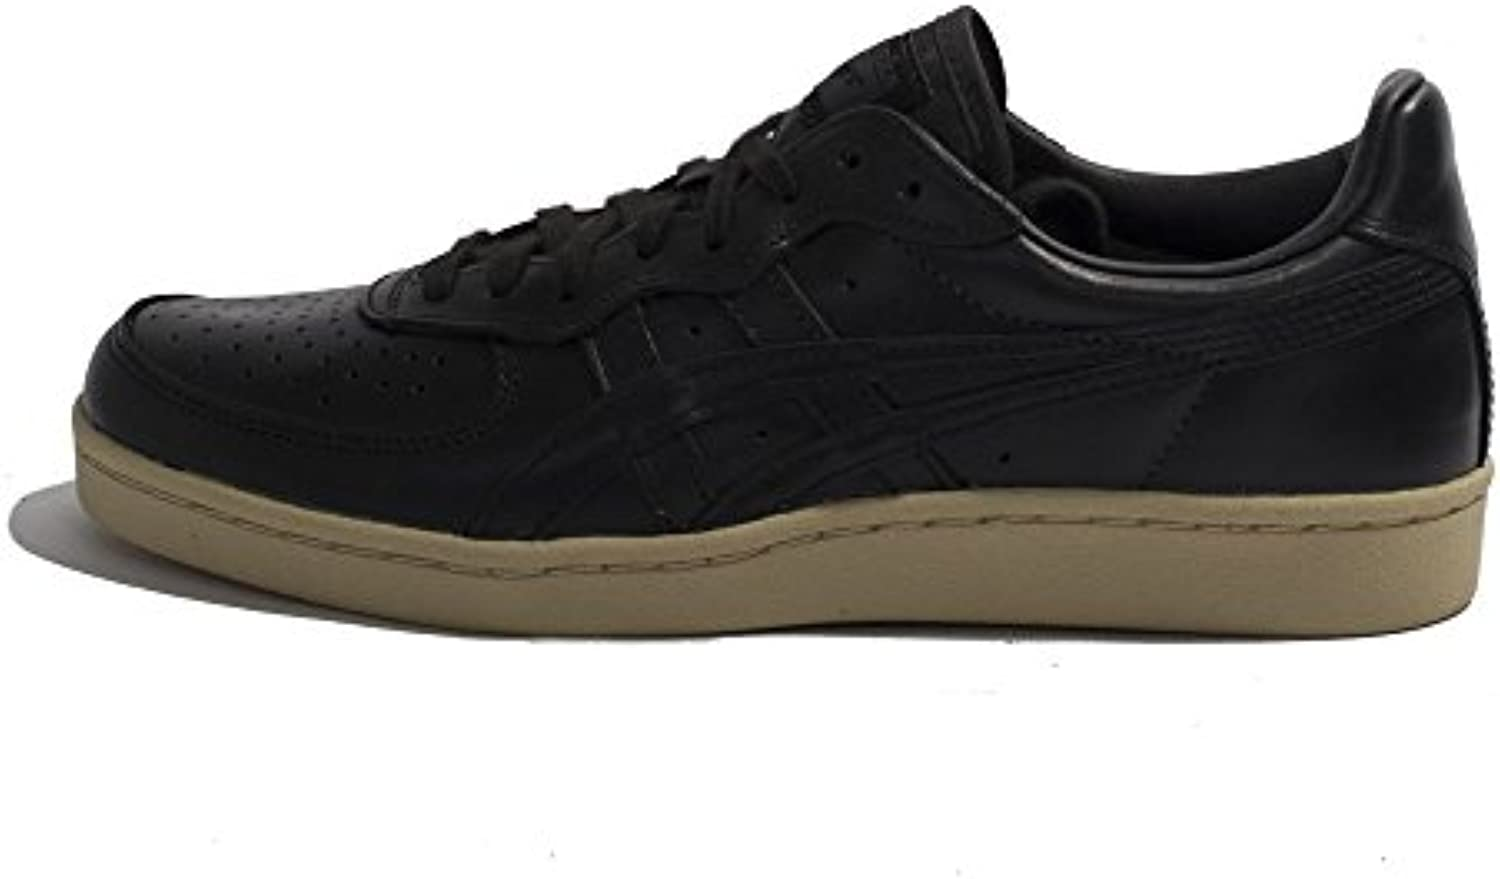 Man/Woman Onitsuka Tiger GSM Reliable Reliable Reliable quality Quality First Great choice 9d9dc3